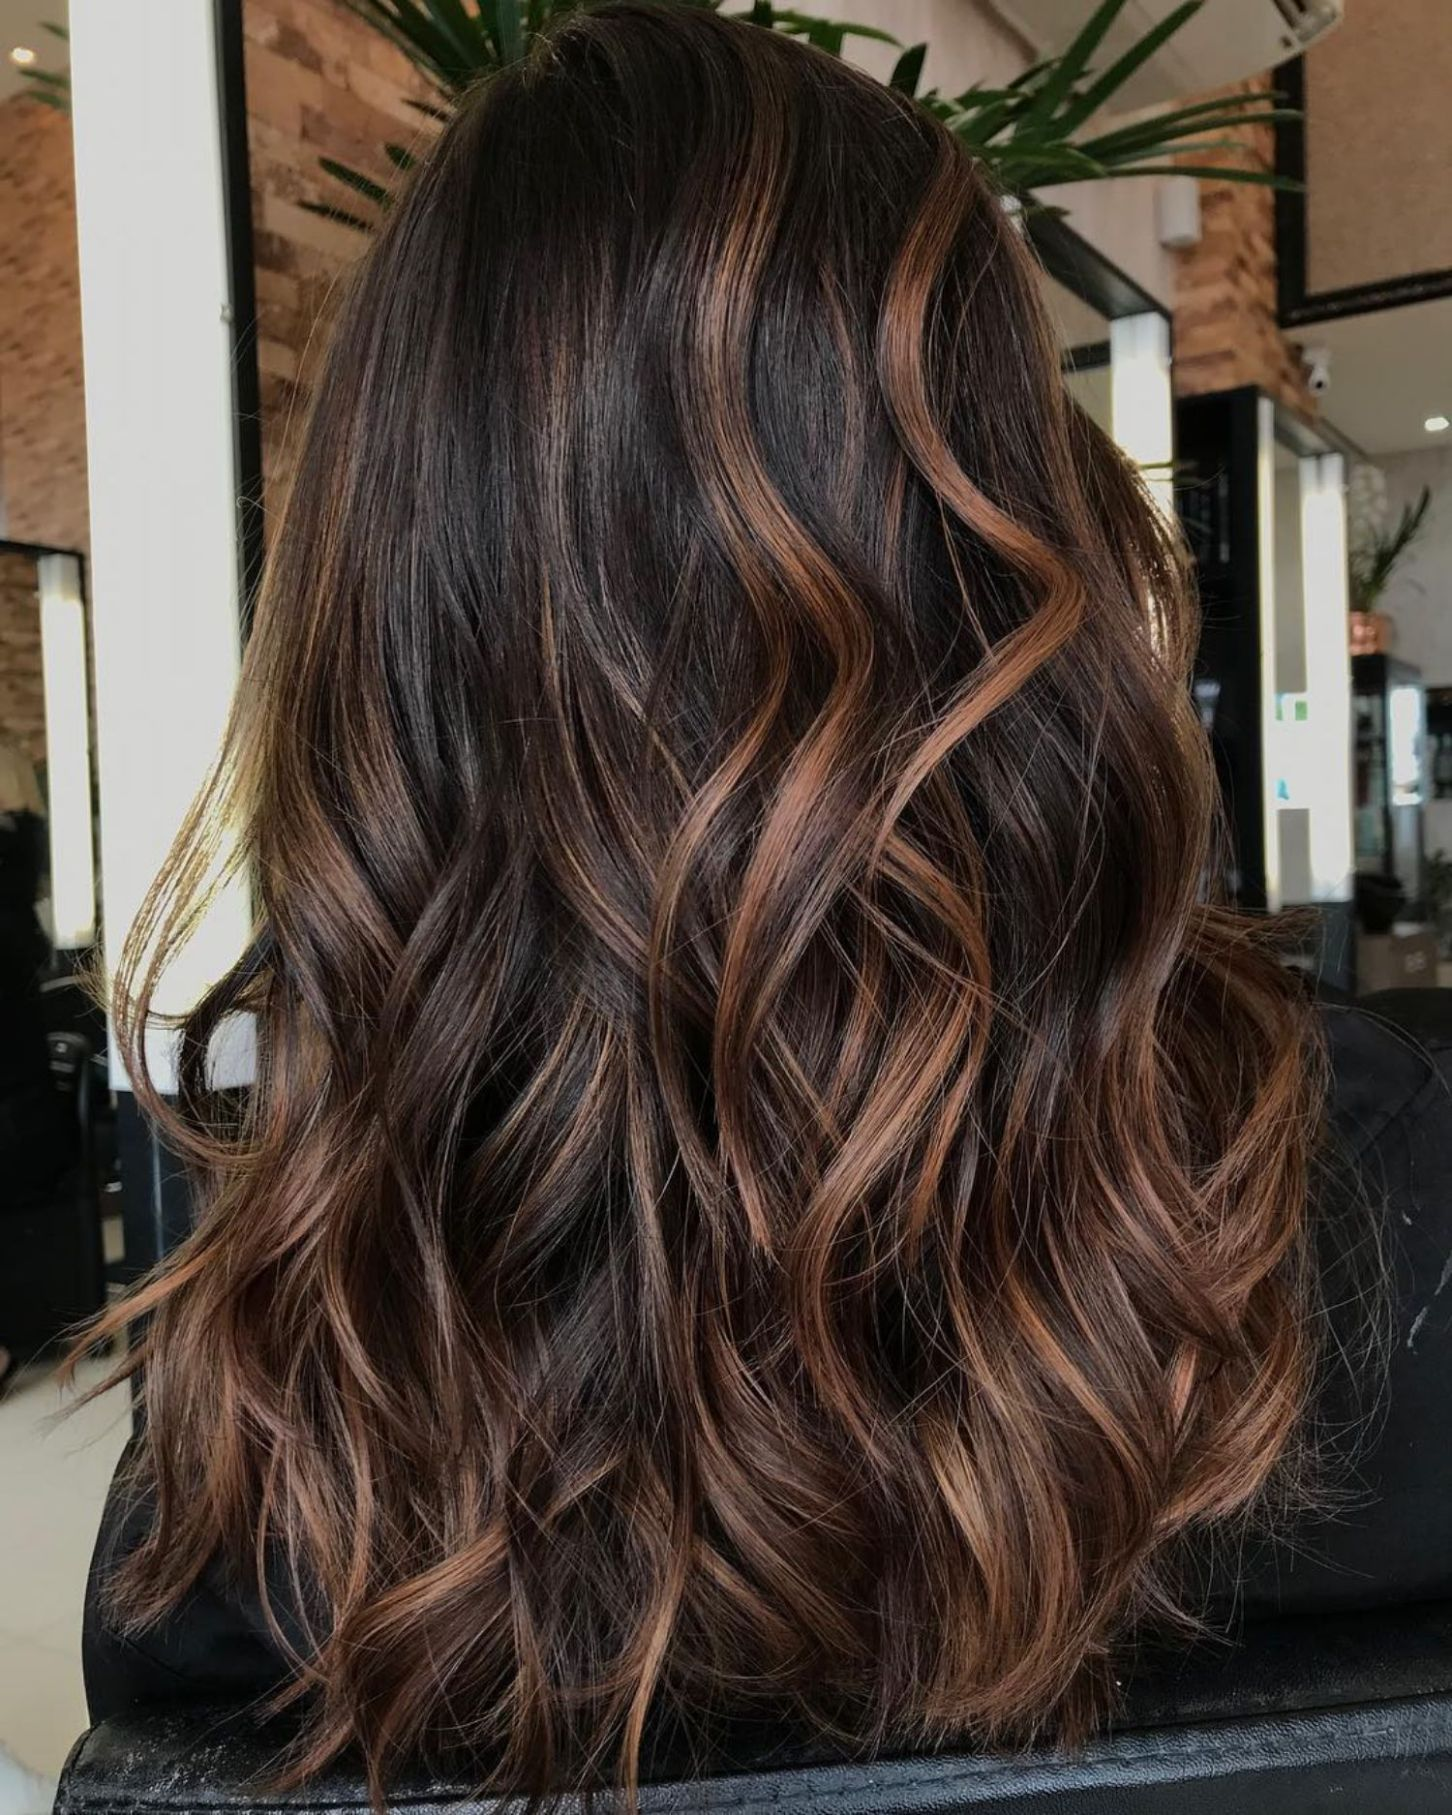 60 Hairstyles Featuring Dark Brown Hair with Highlights  Hair colour  Hair, Brown hair with